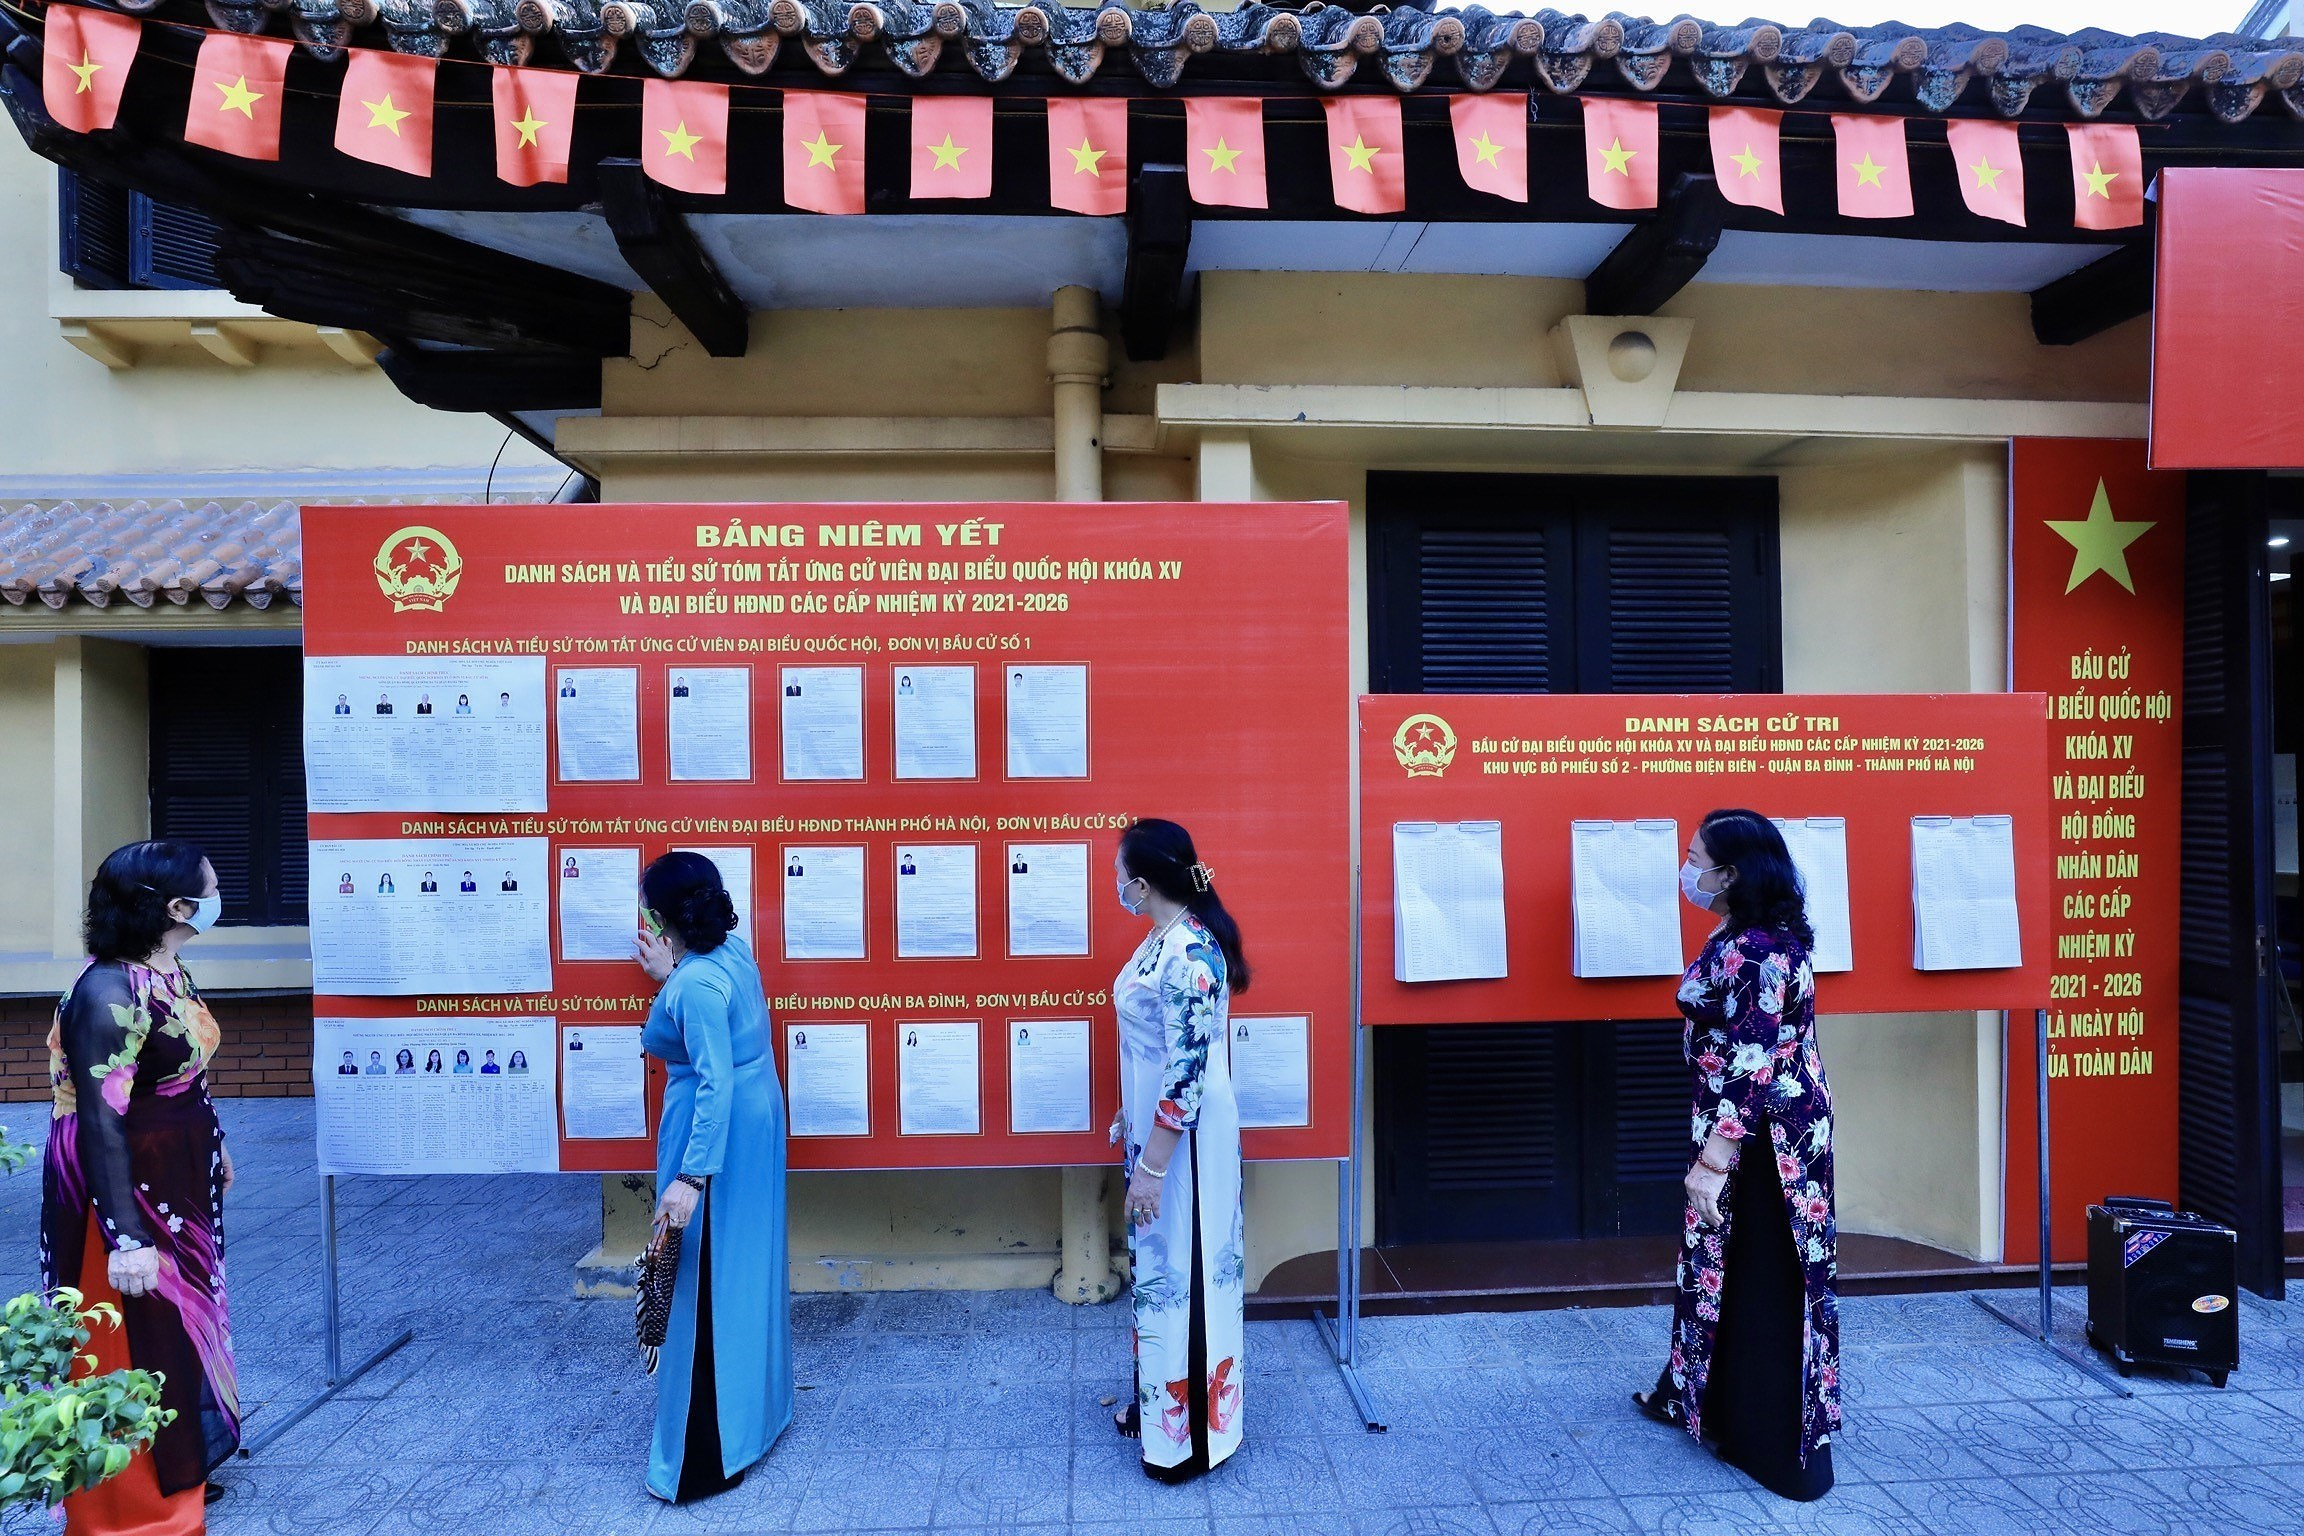 Voters nationwide cast ballots hinh anh 11